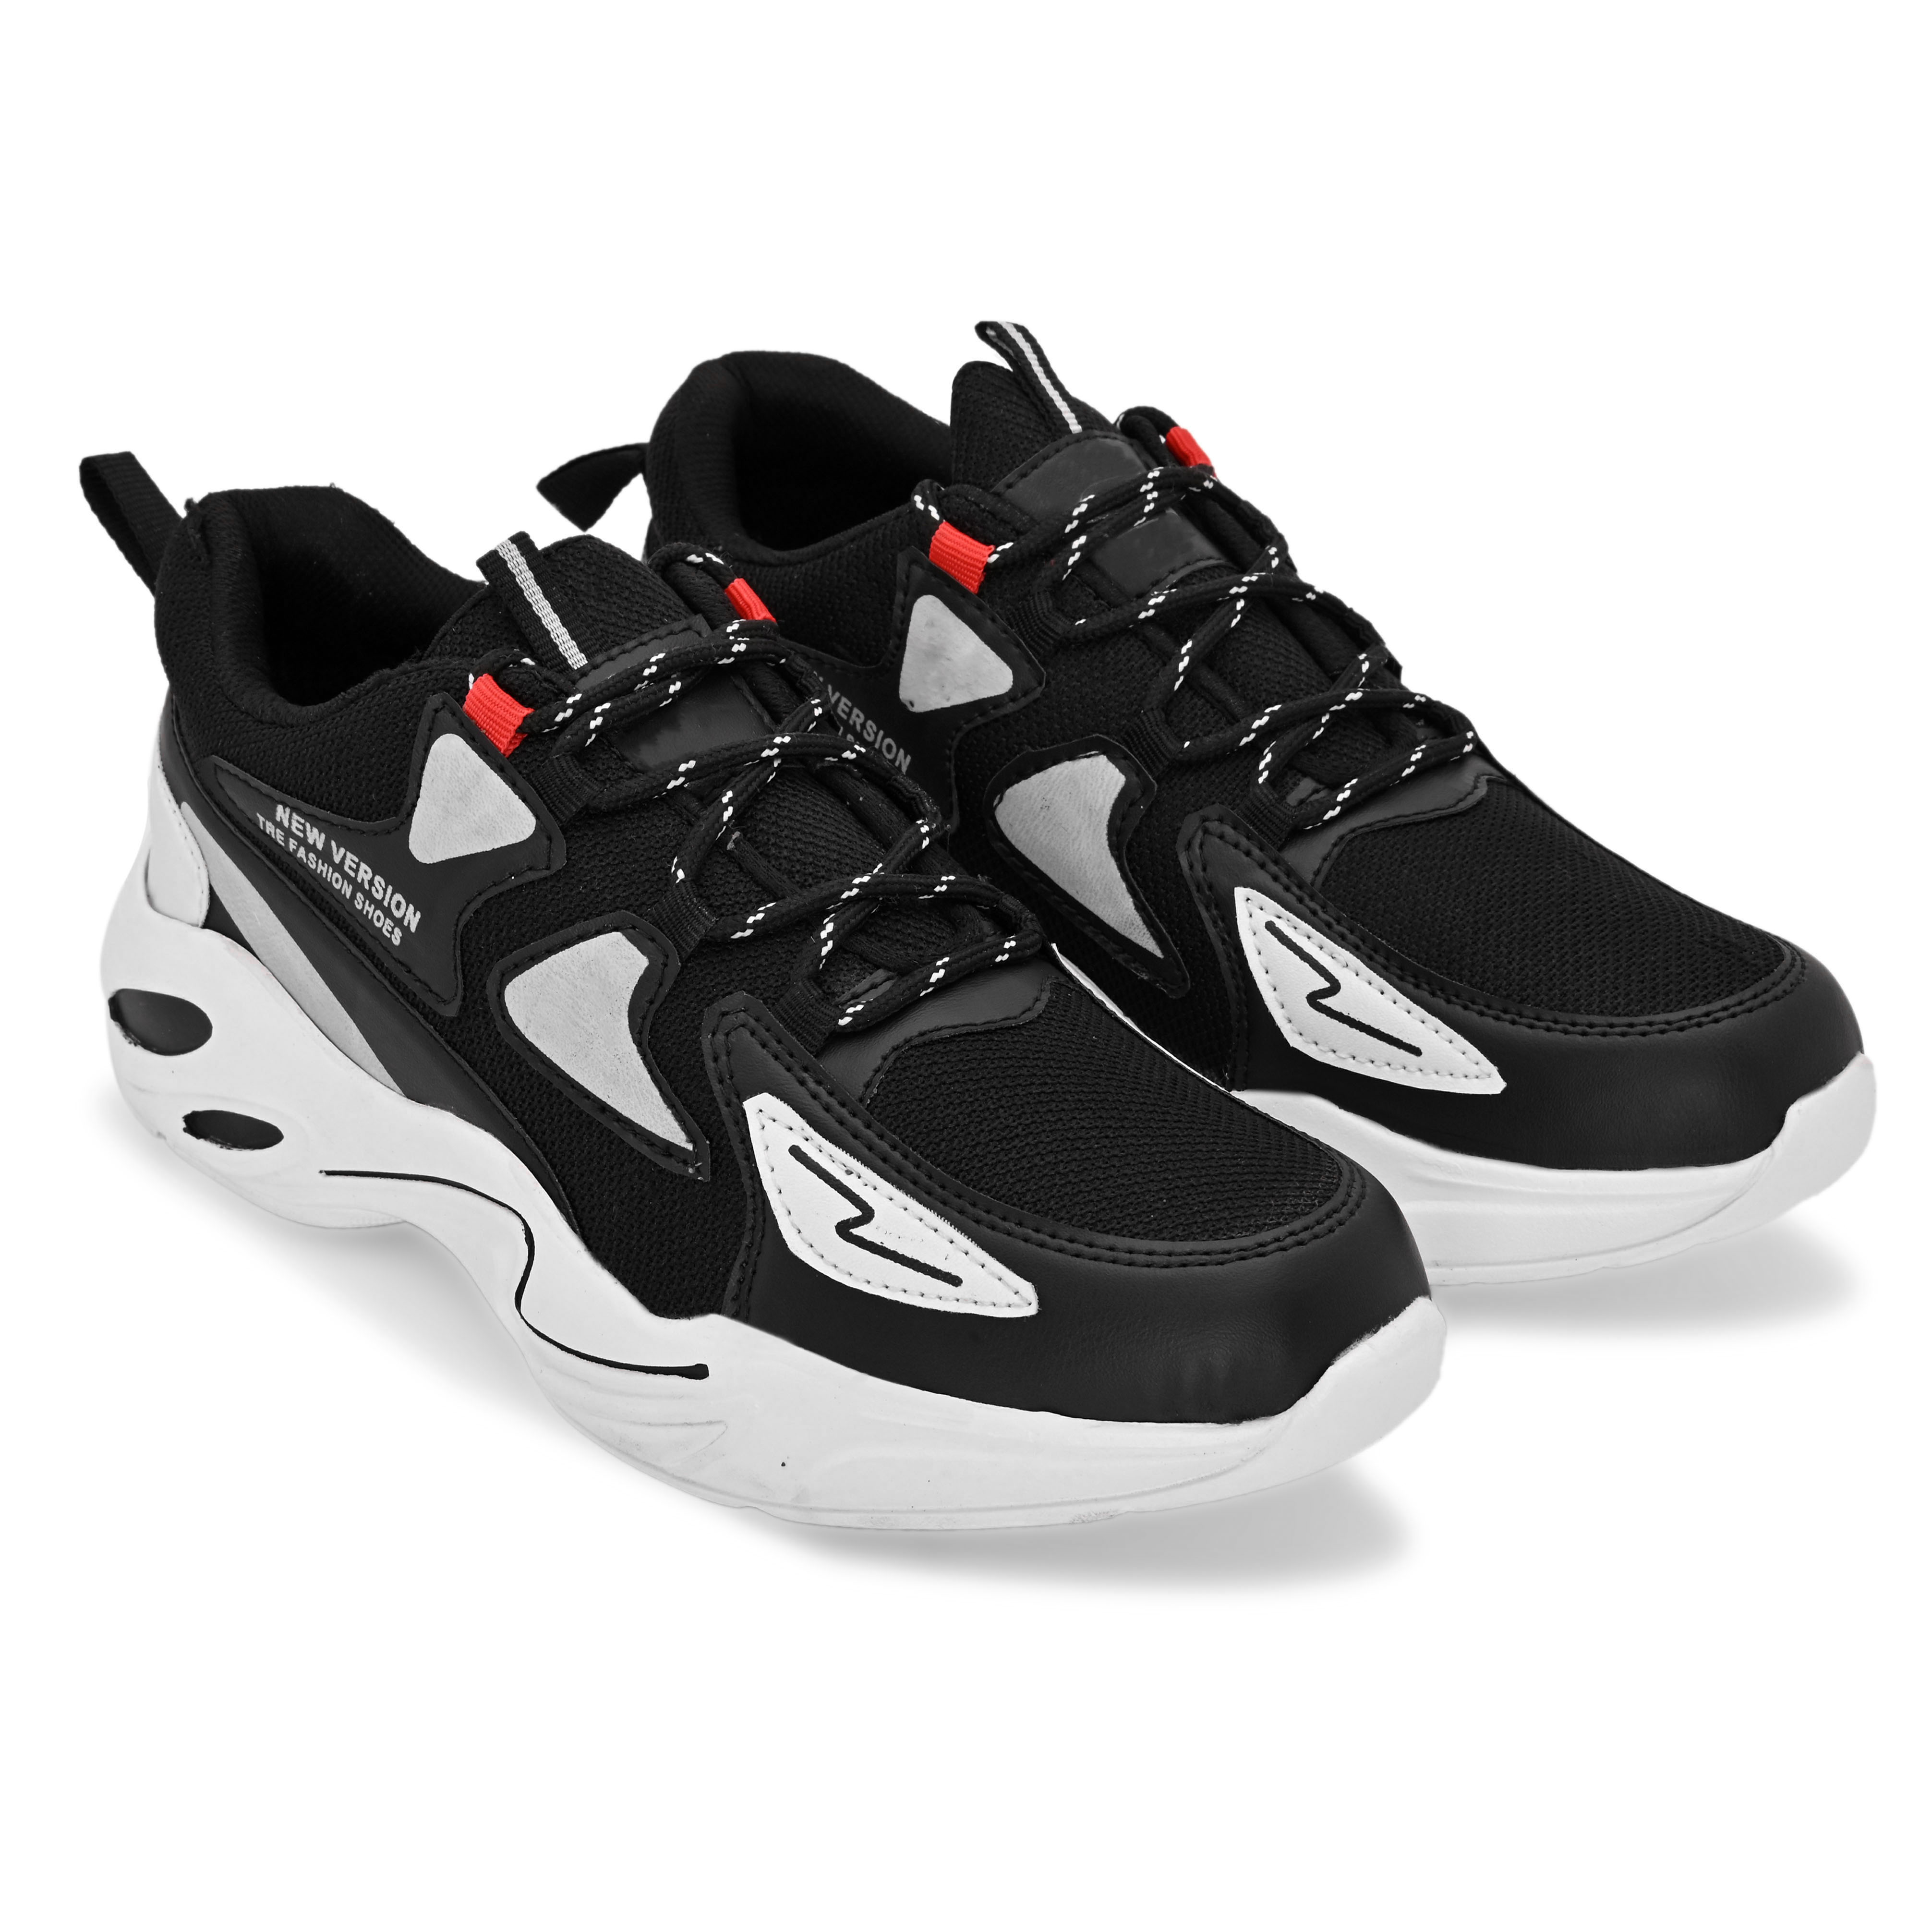 BRIFAR COMFORTABLE & TRENDY SPORTS SHOES ARE RELIABLE FOR ANY BFS0813BLK1 (7-10, BLACK, 4 PAIR)